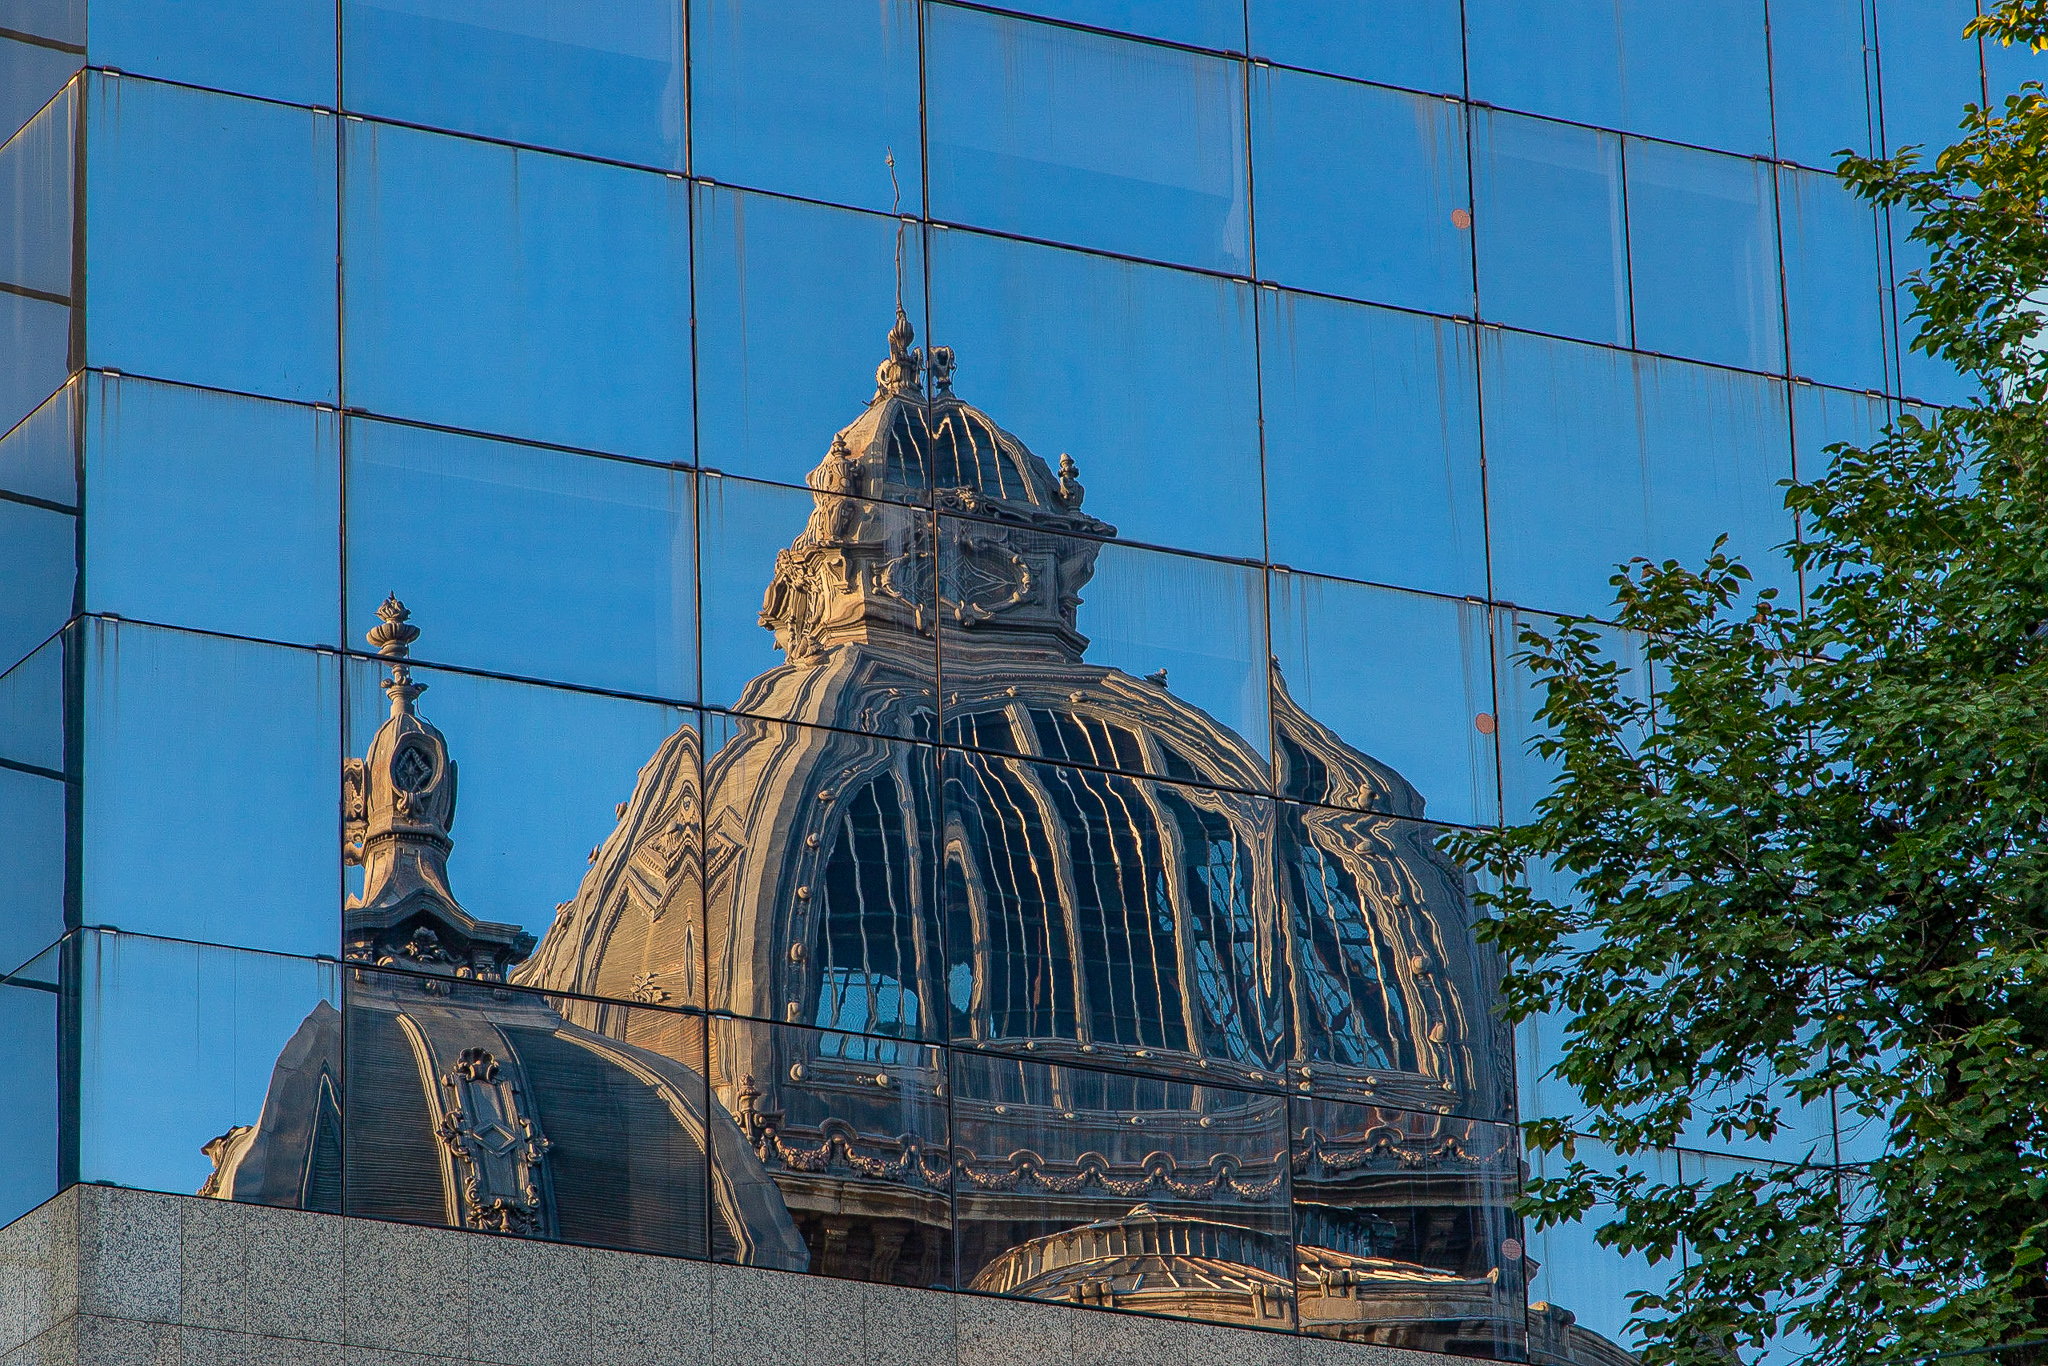 Reflections of the Palace of the Deposits and Consignments